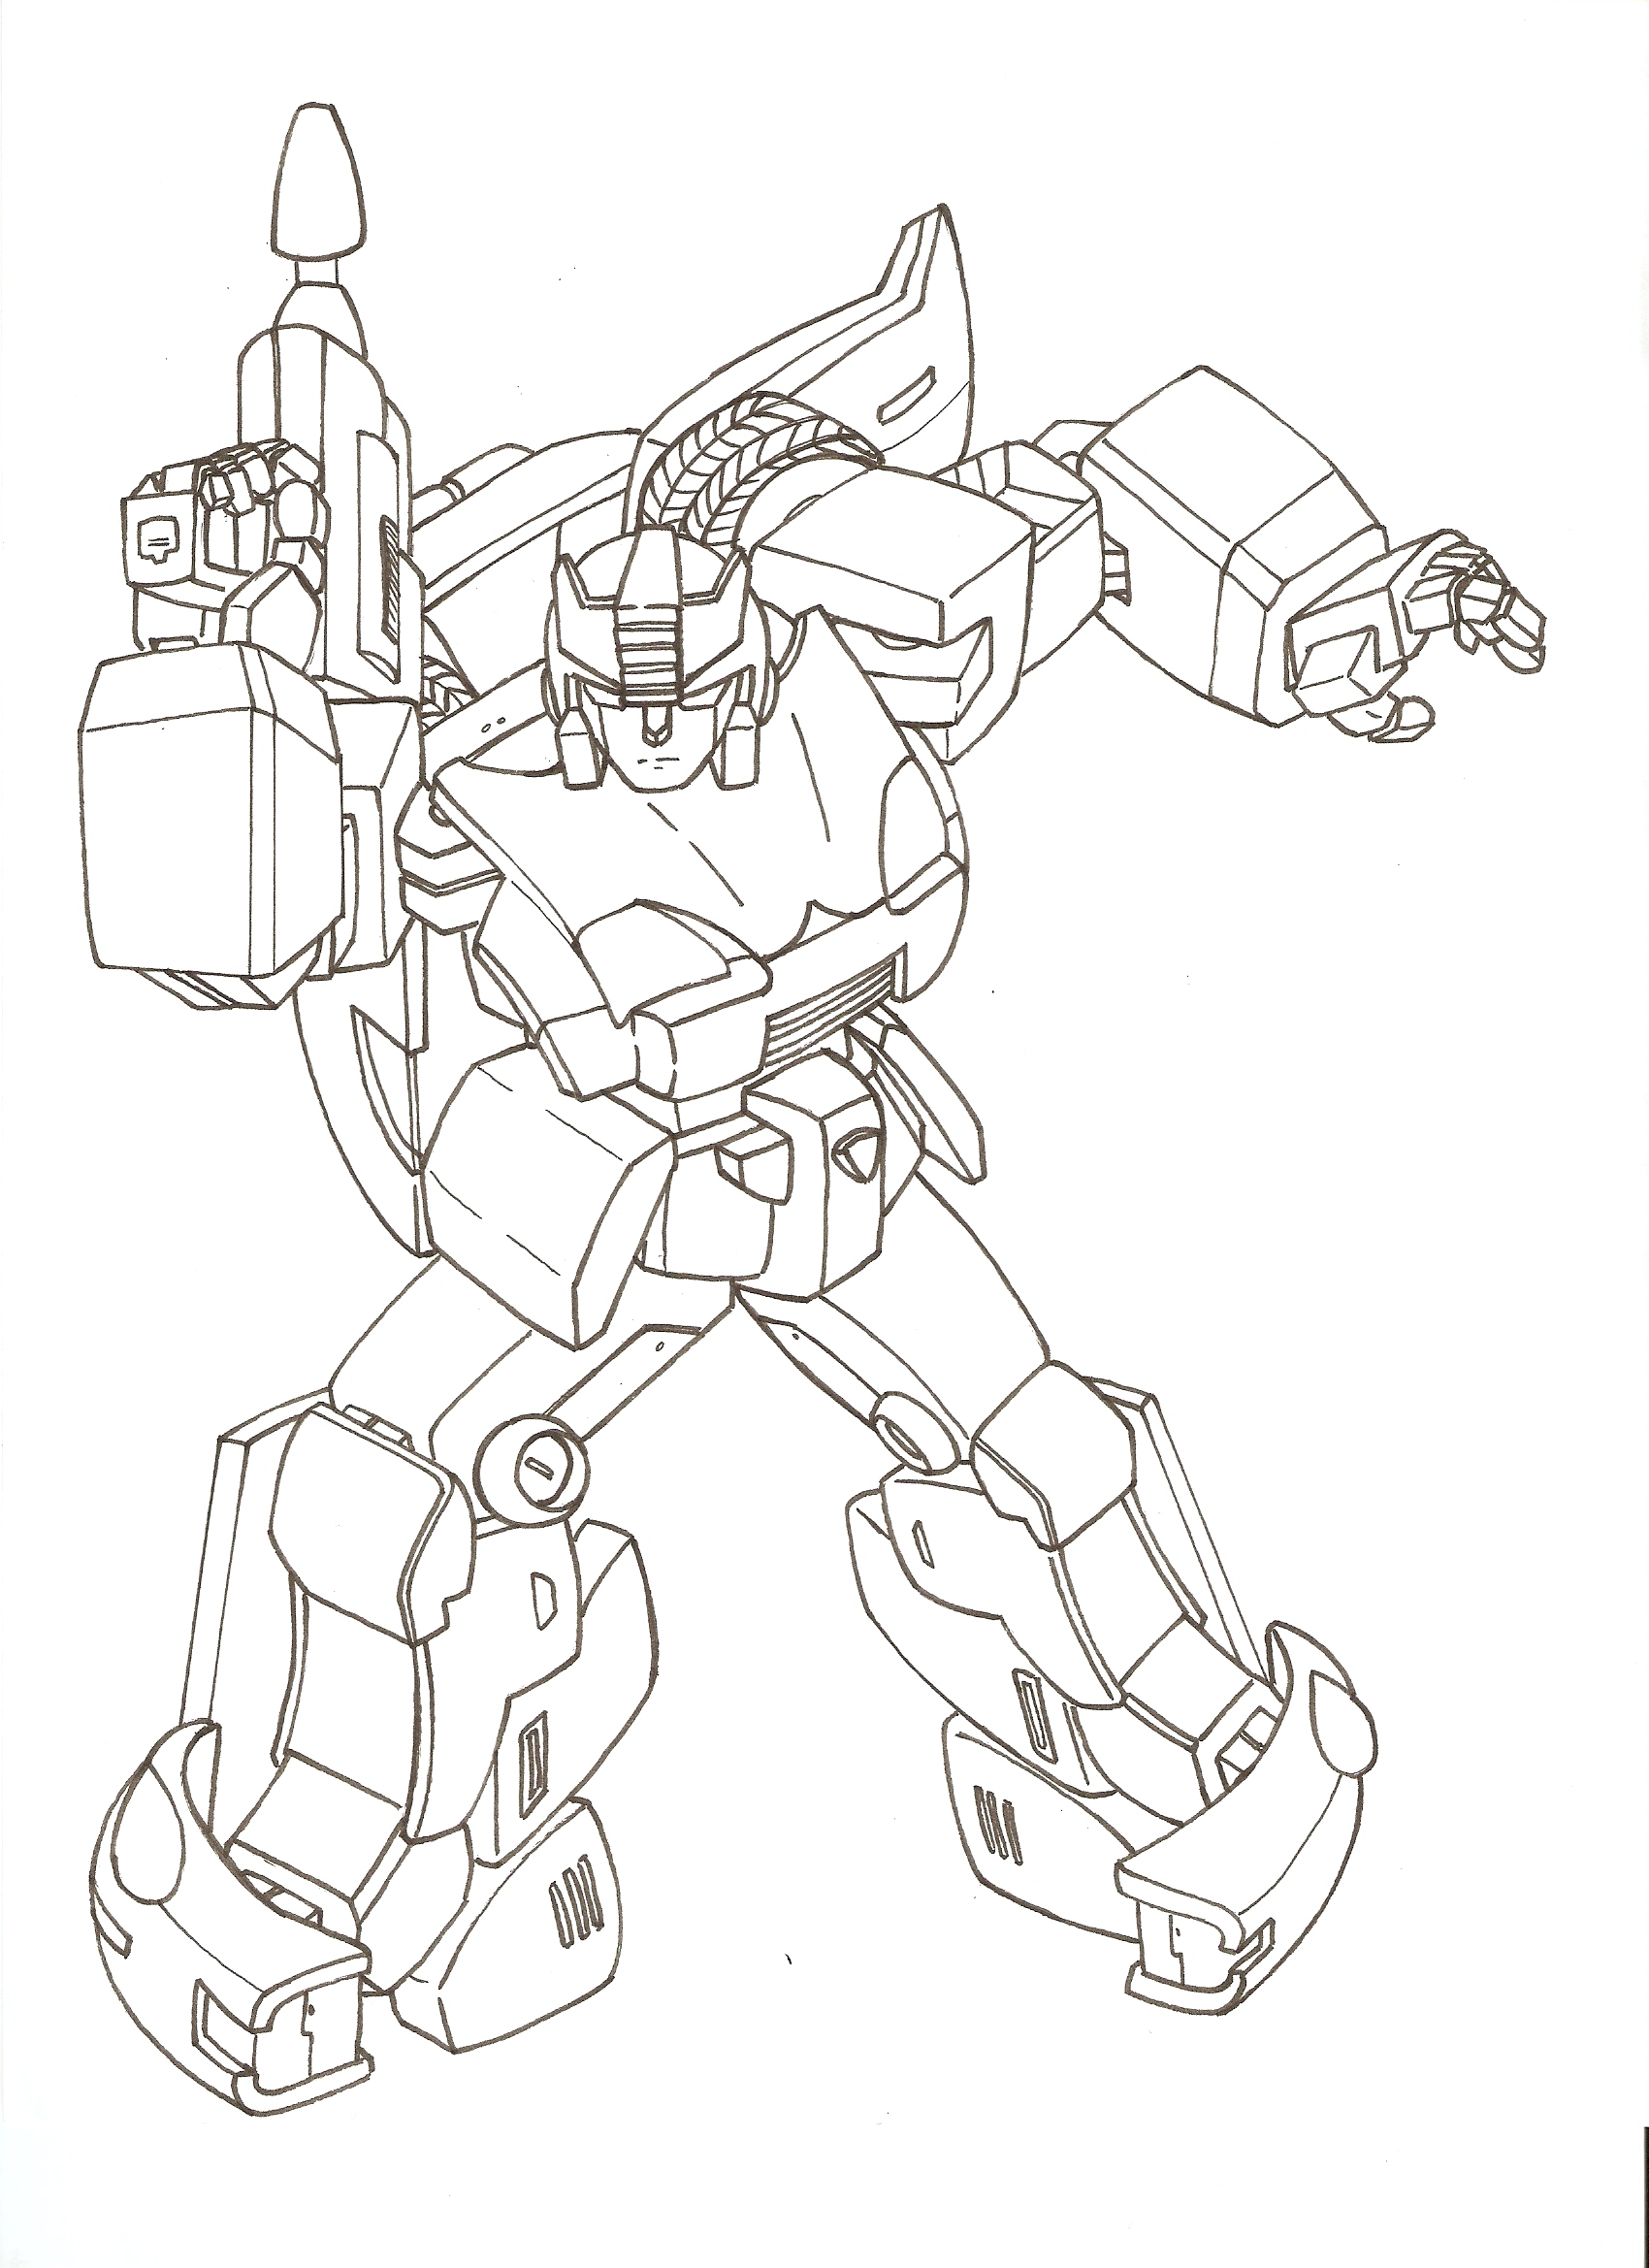 Prowl (G1) | Teletraan I: The Transformers Wiki | Fandom | 2338x1700